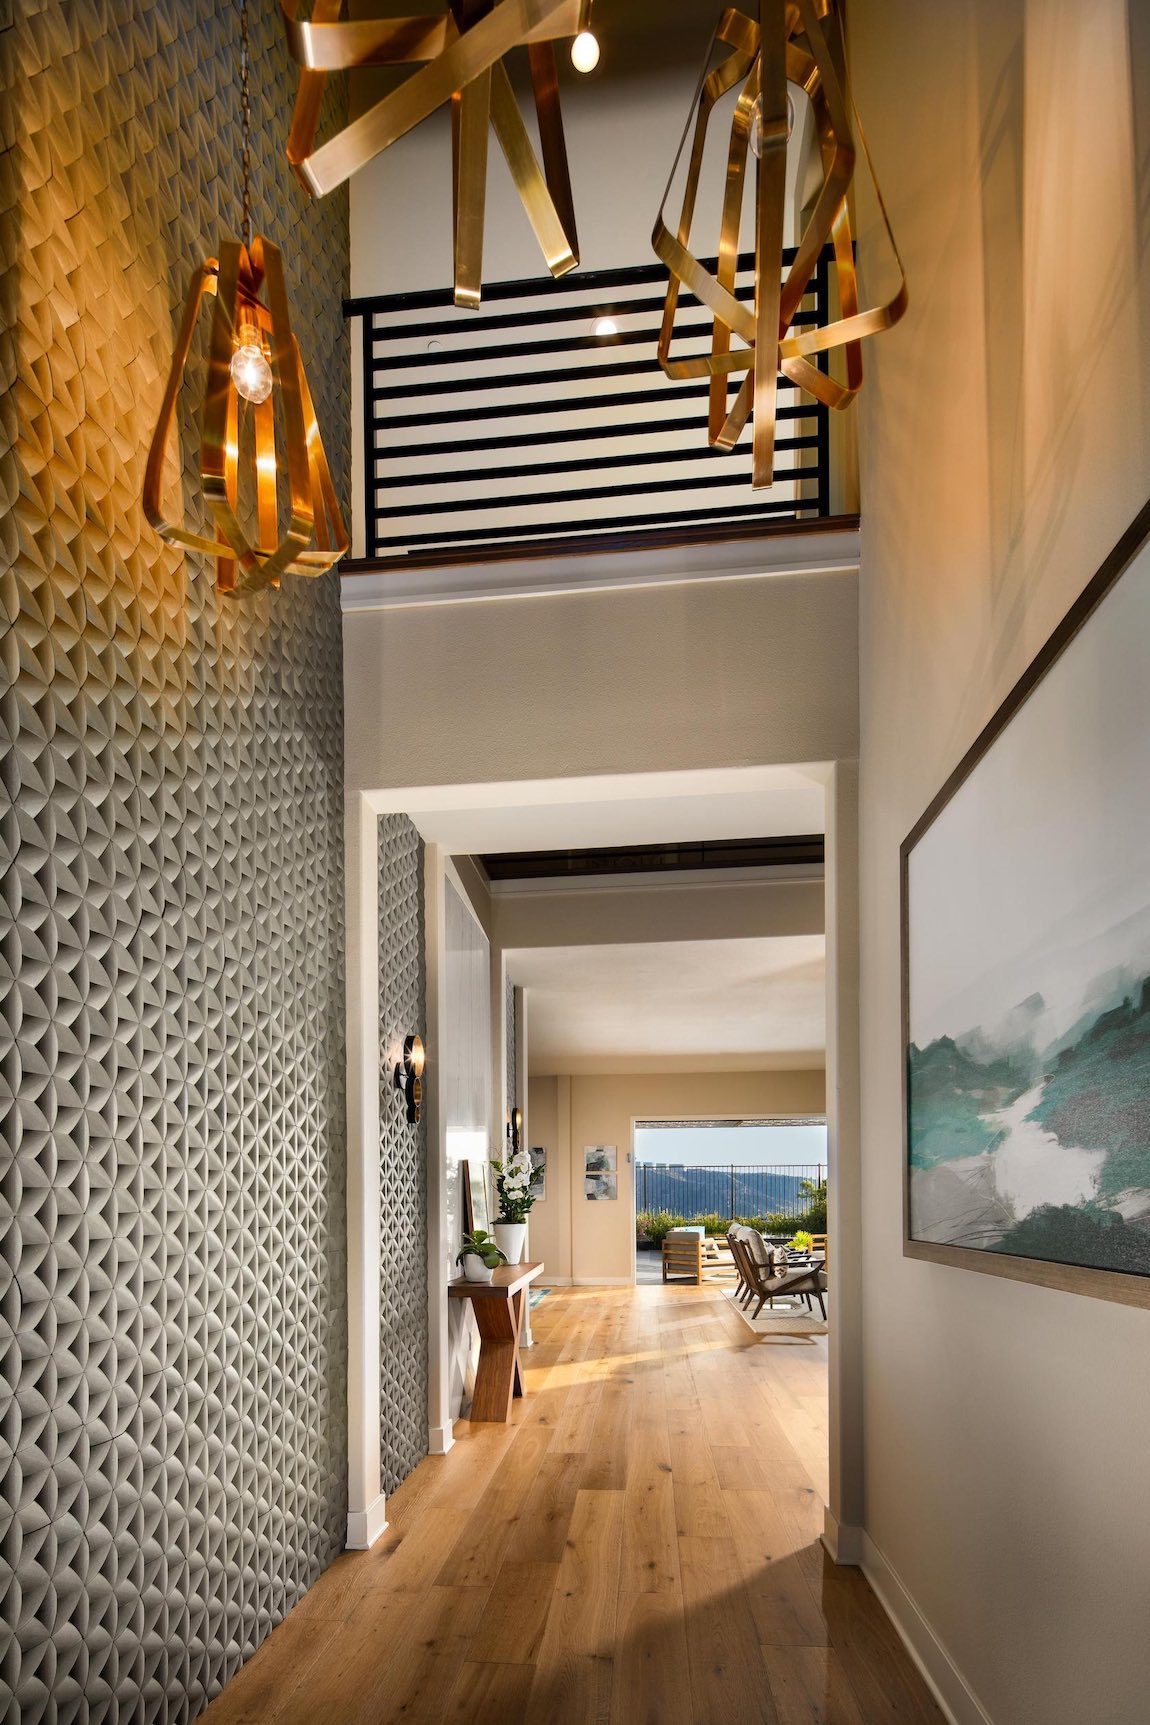 Entry with geometric and metal wall accents.